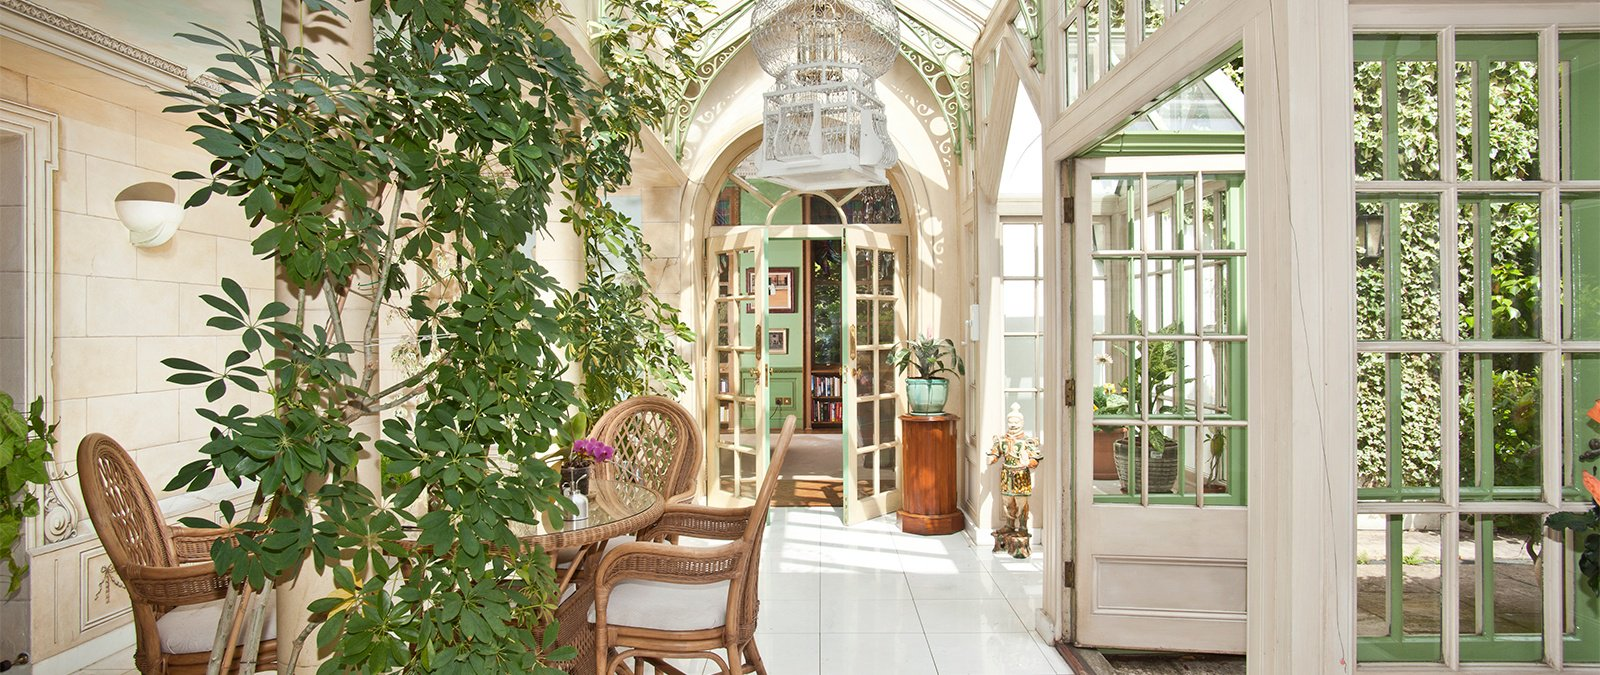 6 Charming Country Homes Combine Luxury With The Simple Life